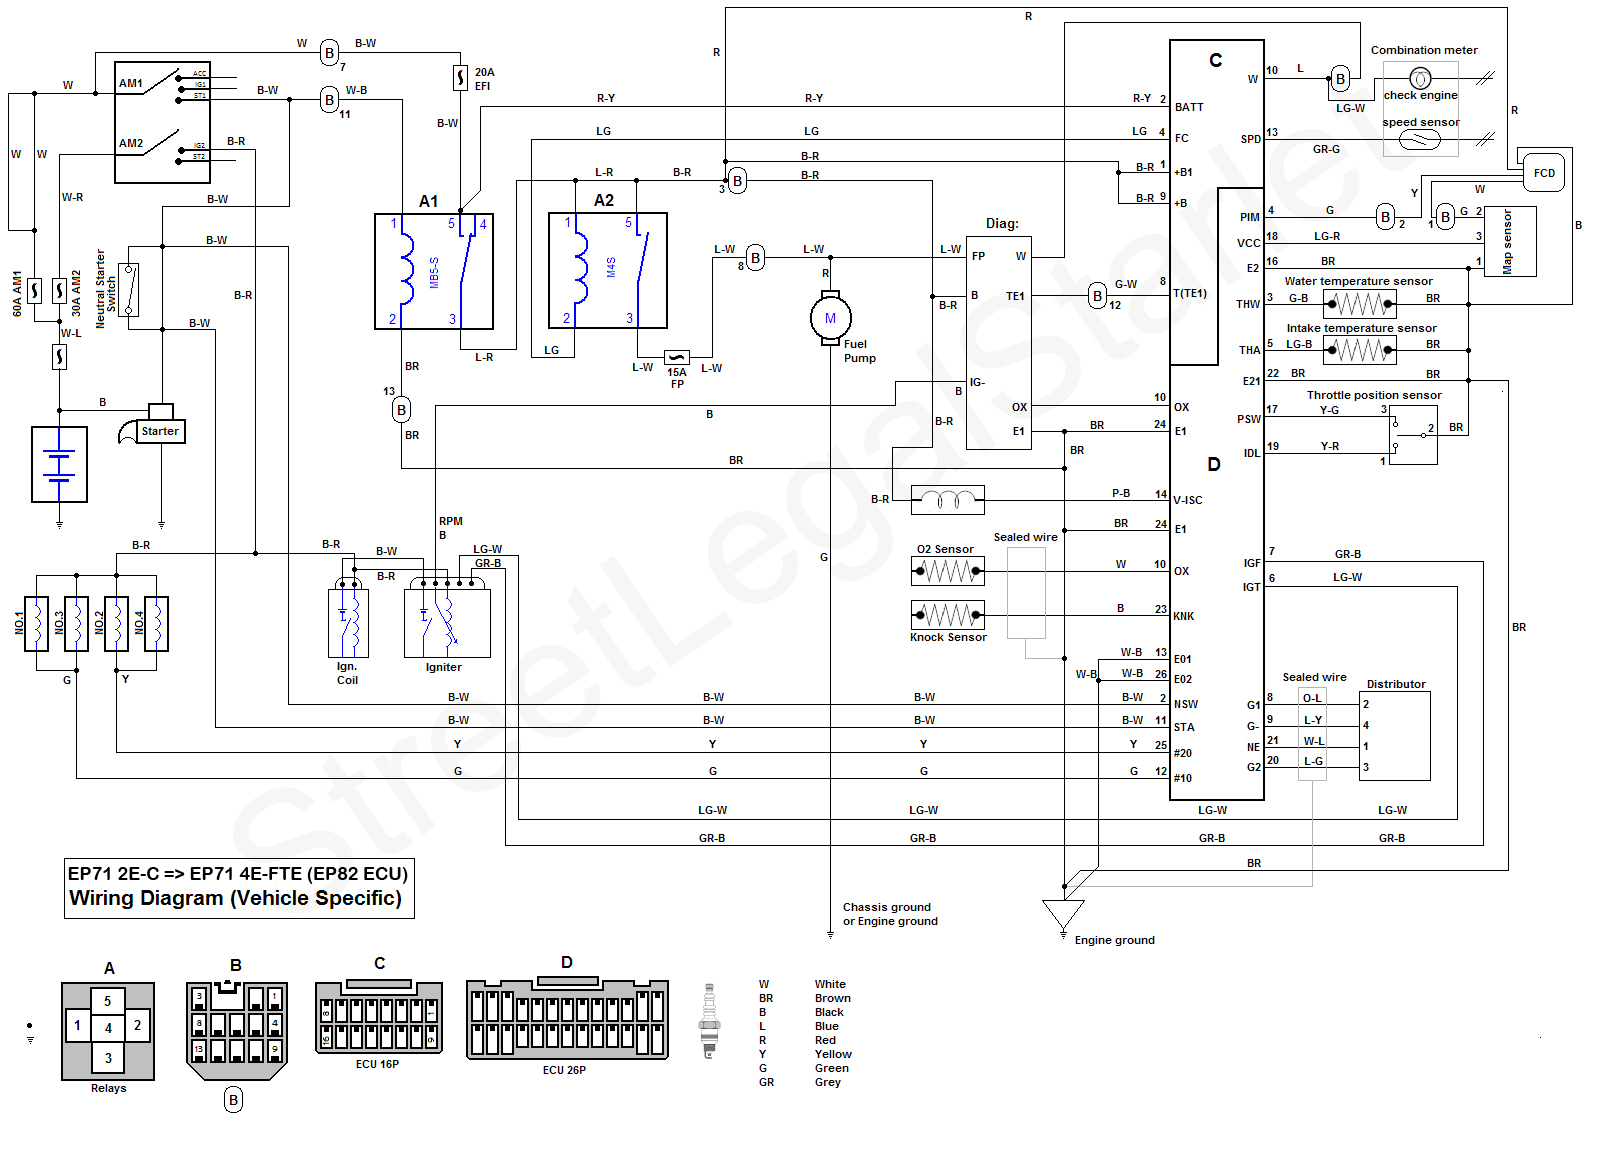 Toyota 5e Wiring Diagram Schema Online Thermocouple Schematic Library Cat 6 Img Ep71